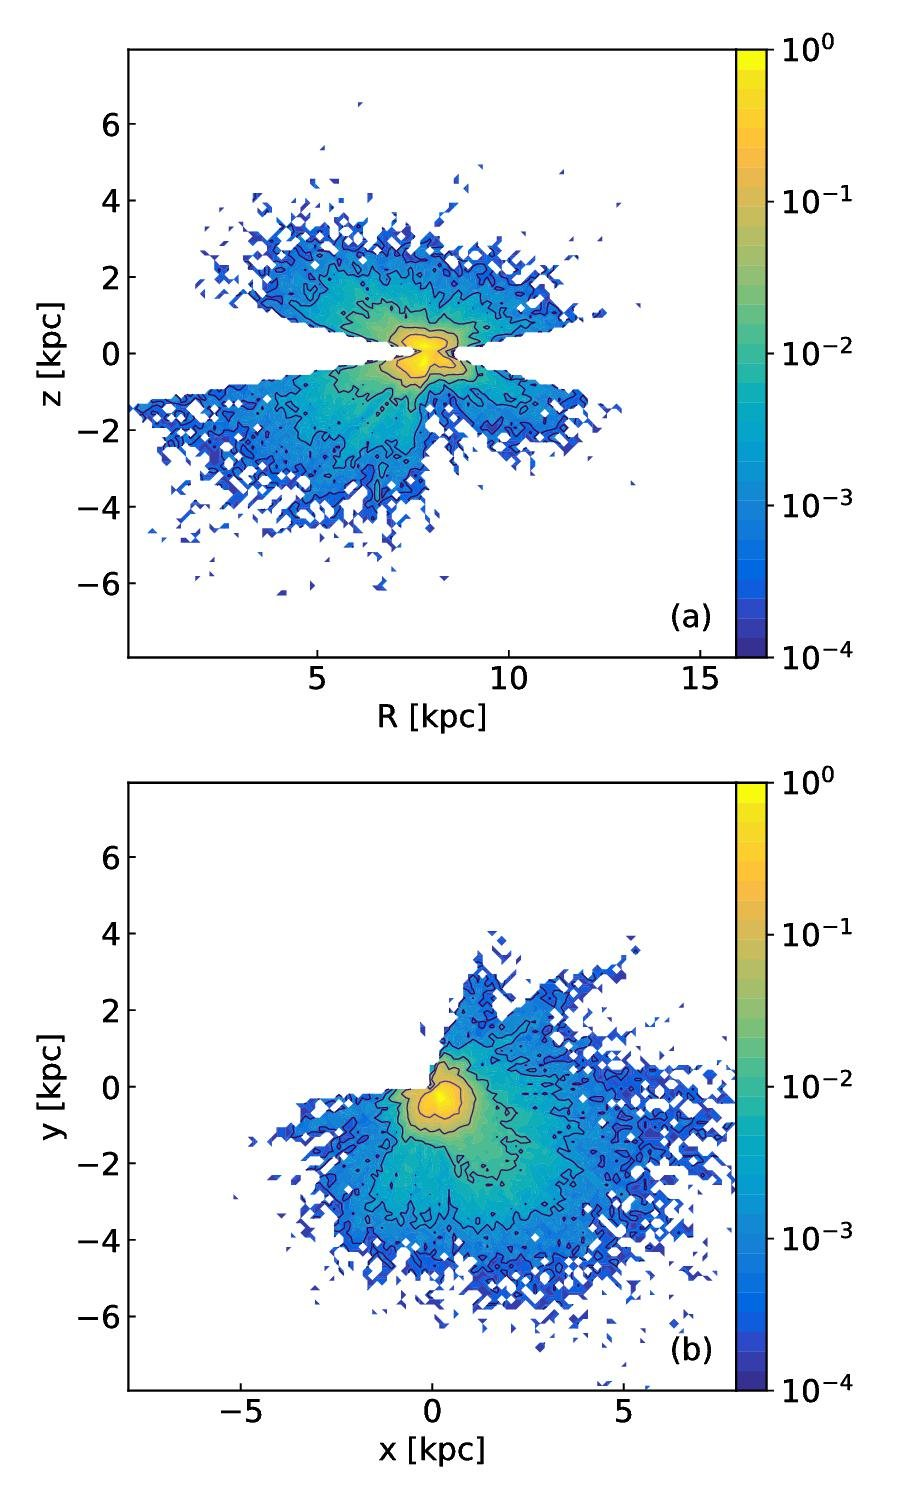 Normalised density distribution of the 340,000 stars observed by GALAH. White regions are areas, in which the survey team has not observed stars, because they are either to close to the Galactic plane (with heights z above the plane close to 0) or too far away.<br /> The upper plot is showing the Galacto-centric radius (R) and height above the Galactic plane (z) with the Sun at (8,0).<br /> The lower panel shows the distance from the Sun (0,0) as a phase-on view in Galactic coordinates (x,y), where the Galactic Centre is at x=8.